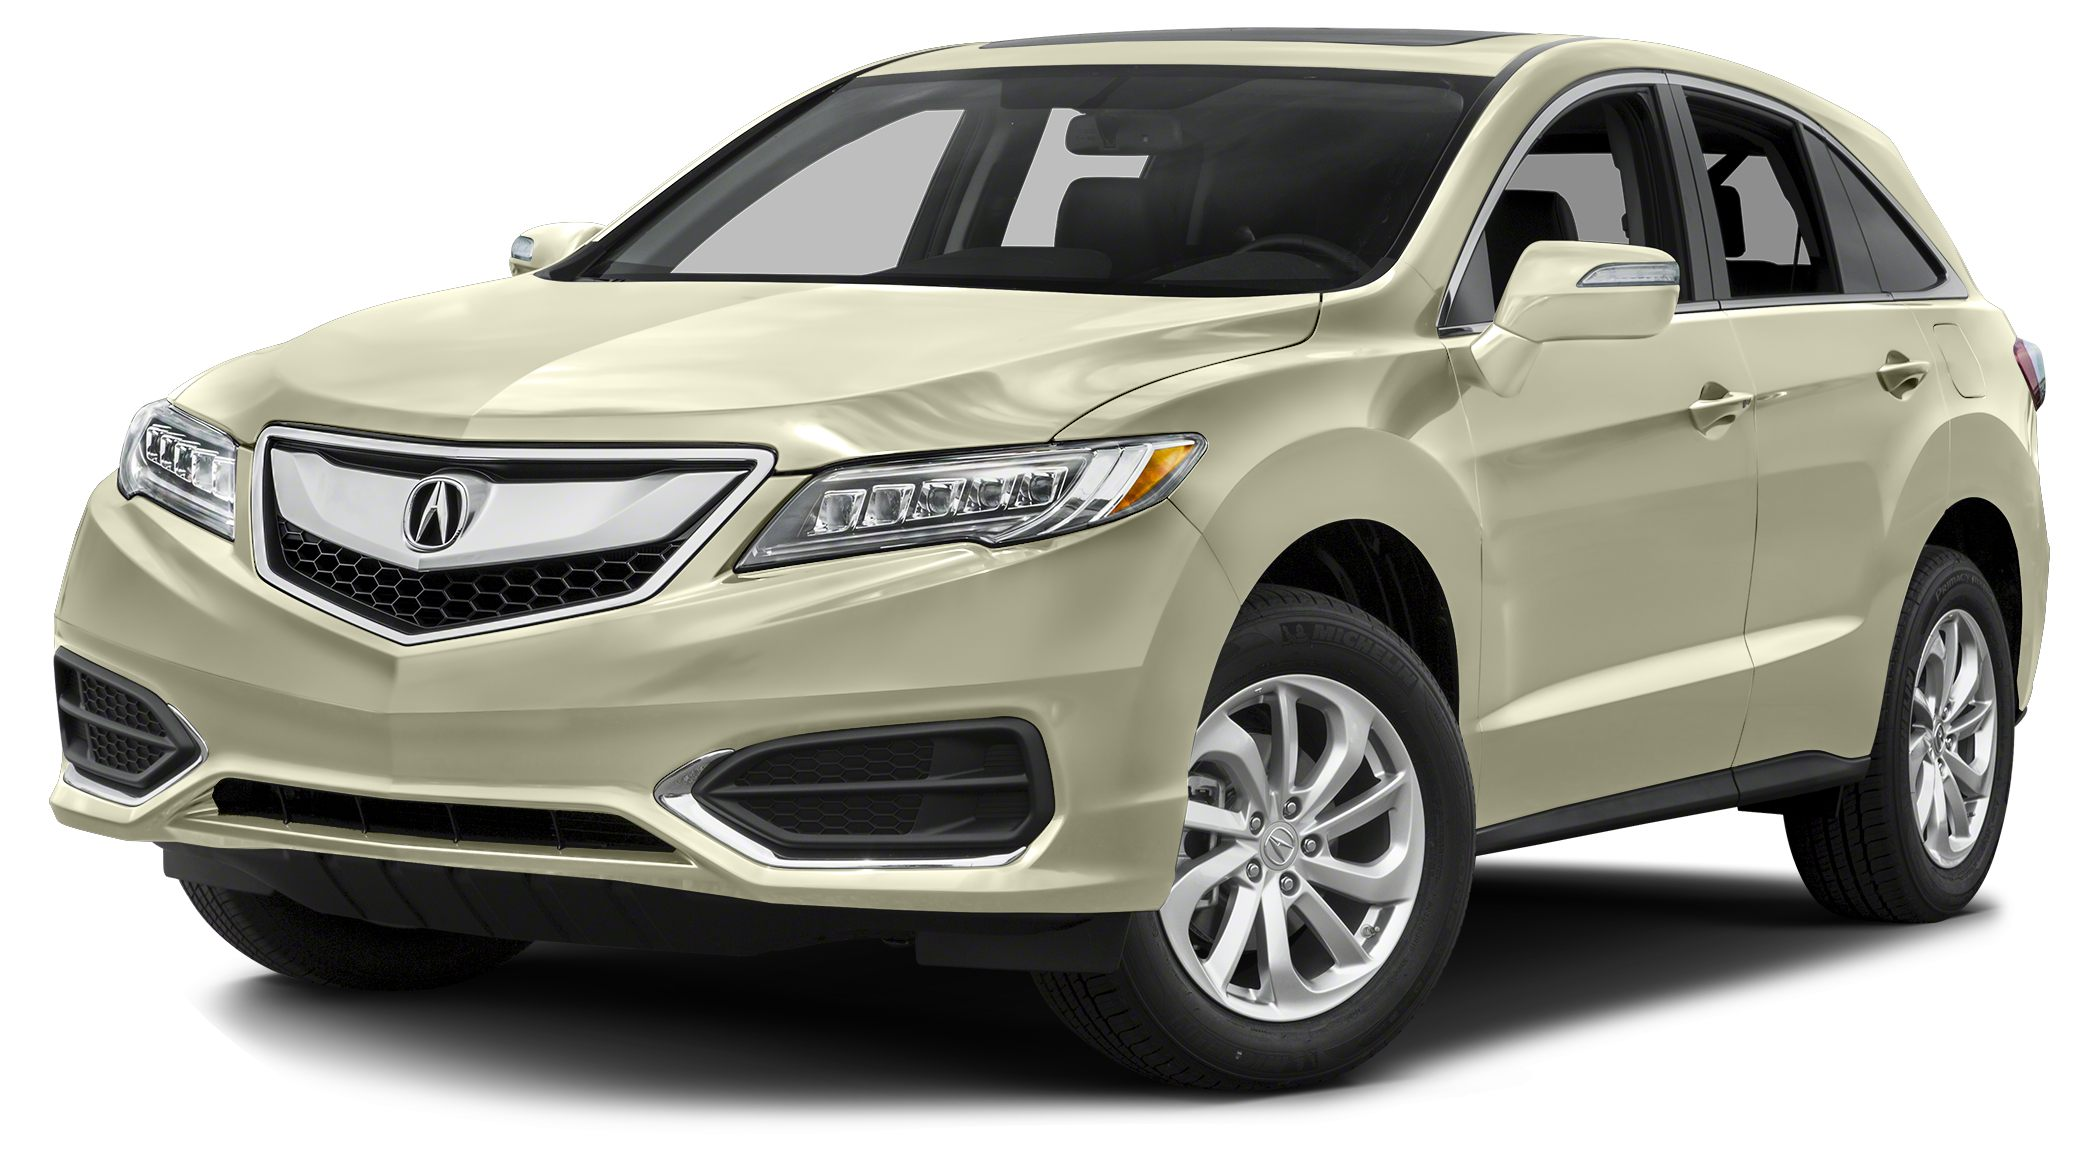 2016 Acura RDX Technology Miles 5Color White Diamond Pearl Stock A017949 VIN 5J8TB4H55GL0179